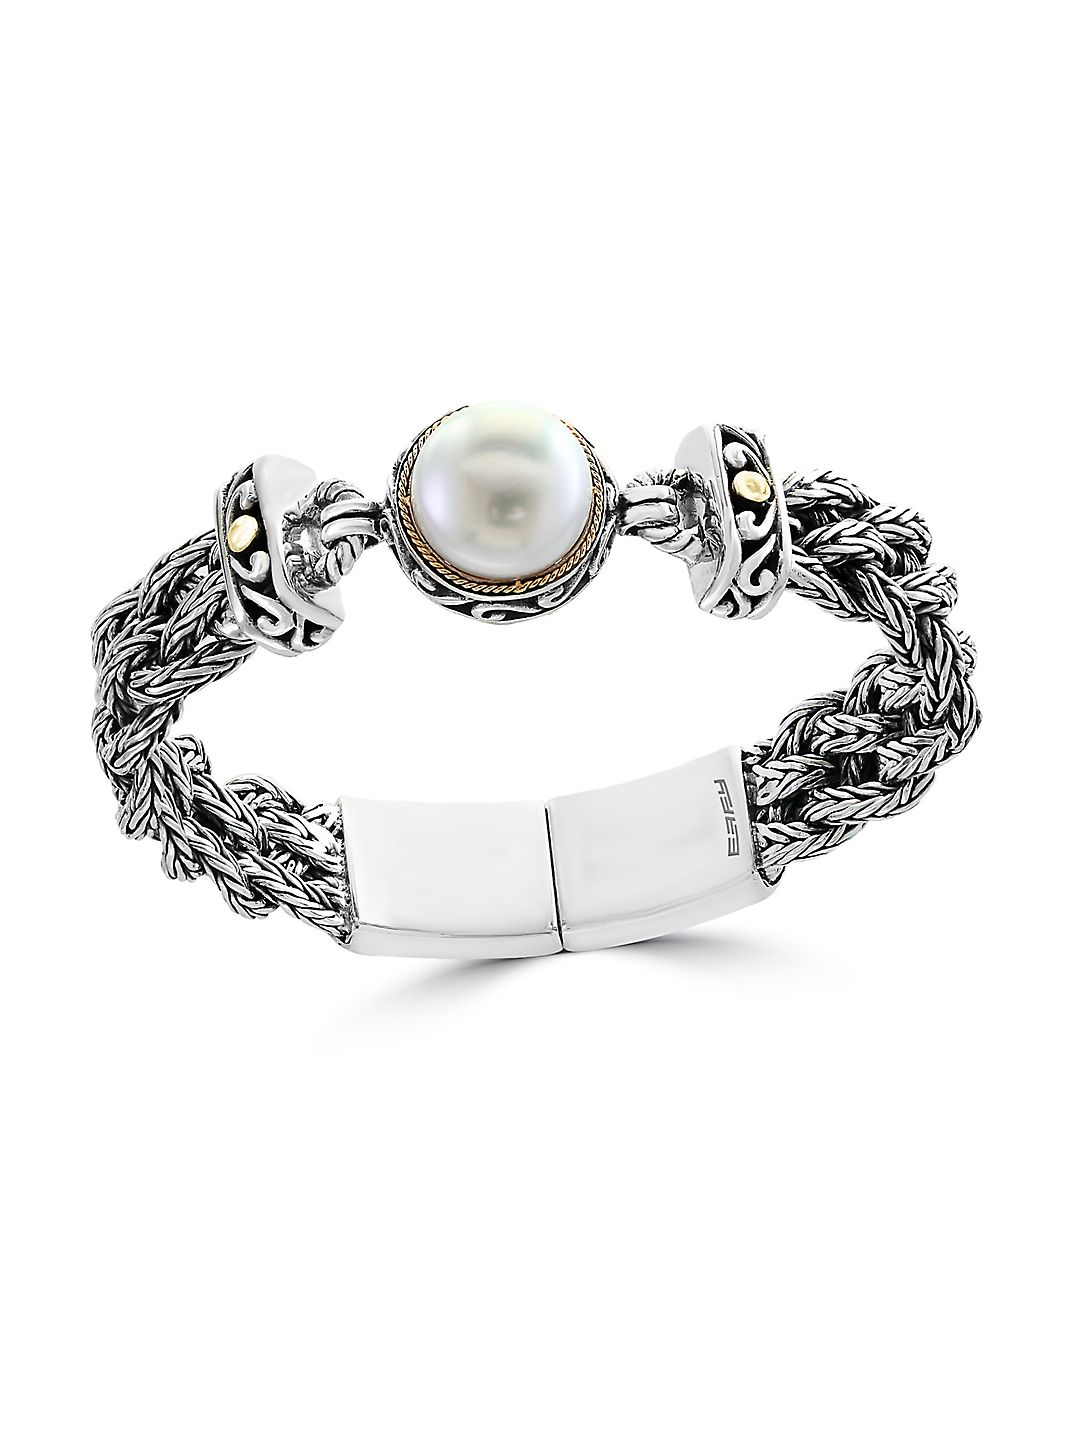 Effy 925 Pearl Sterling Silver Ring